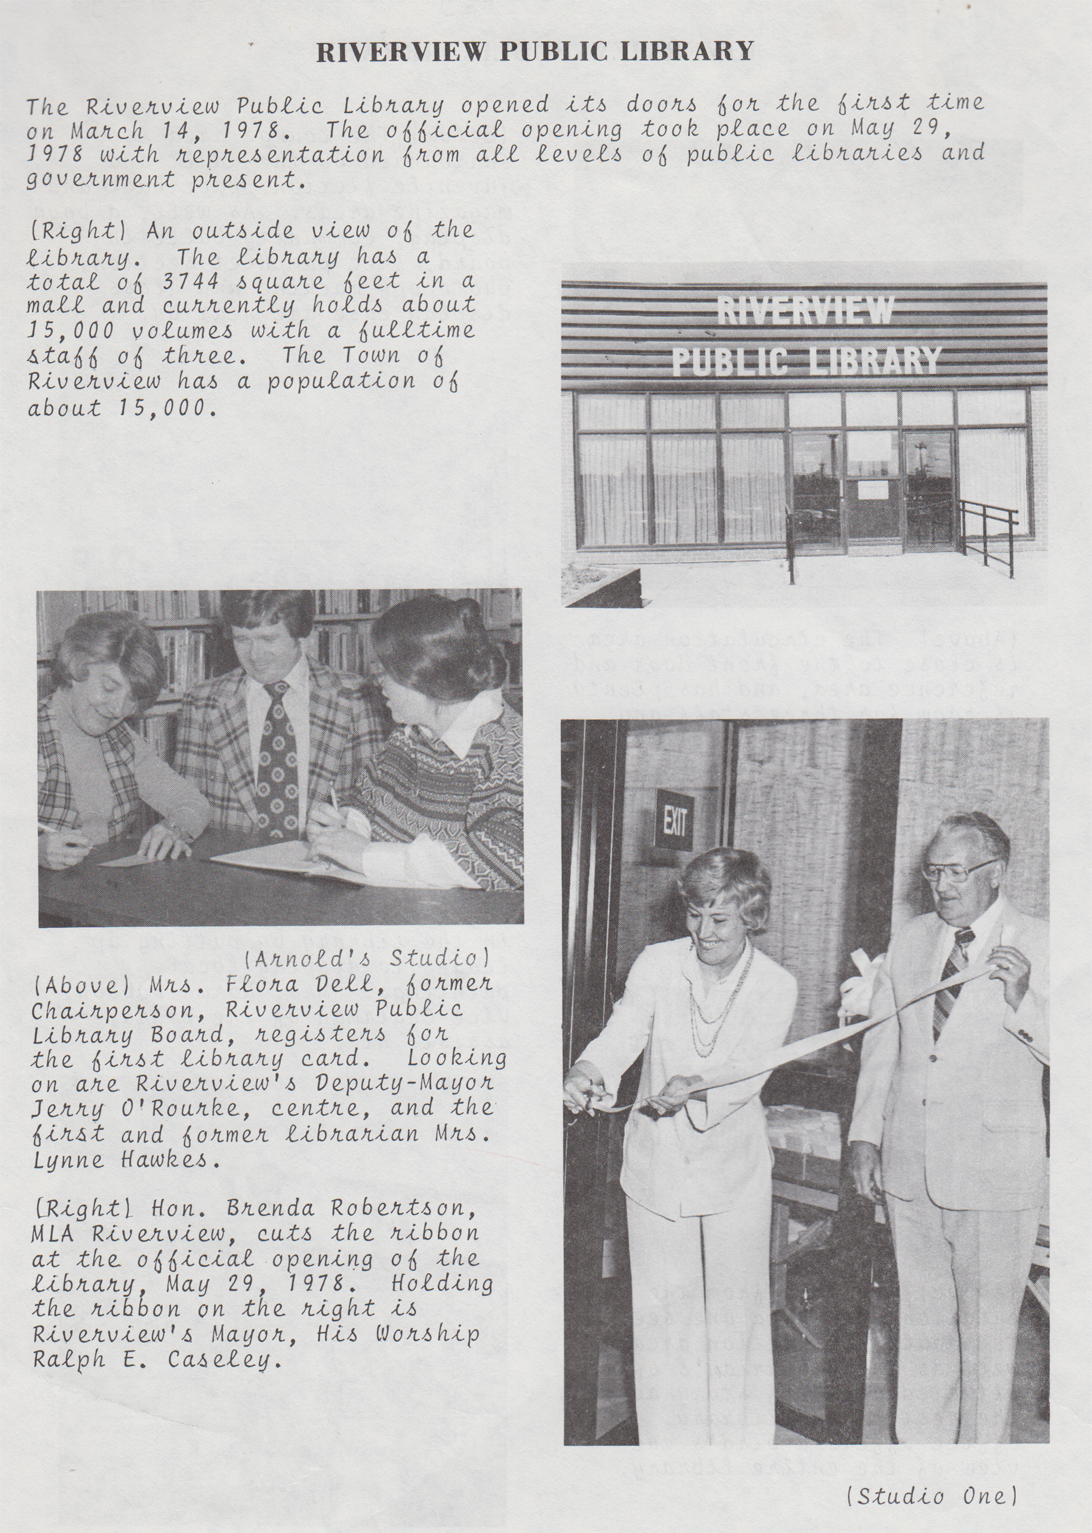 1984 6 RiverviewPublicLibrary 2